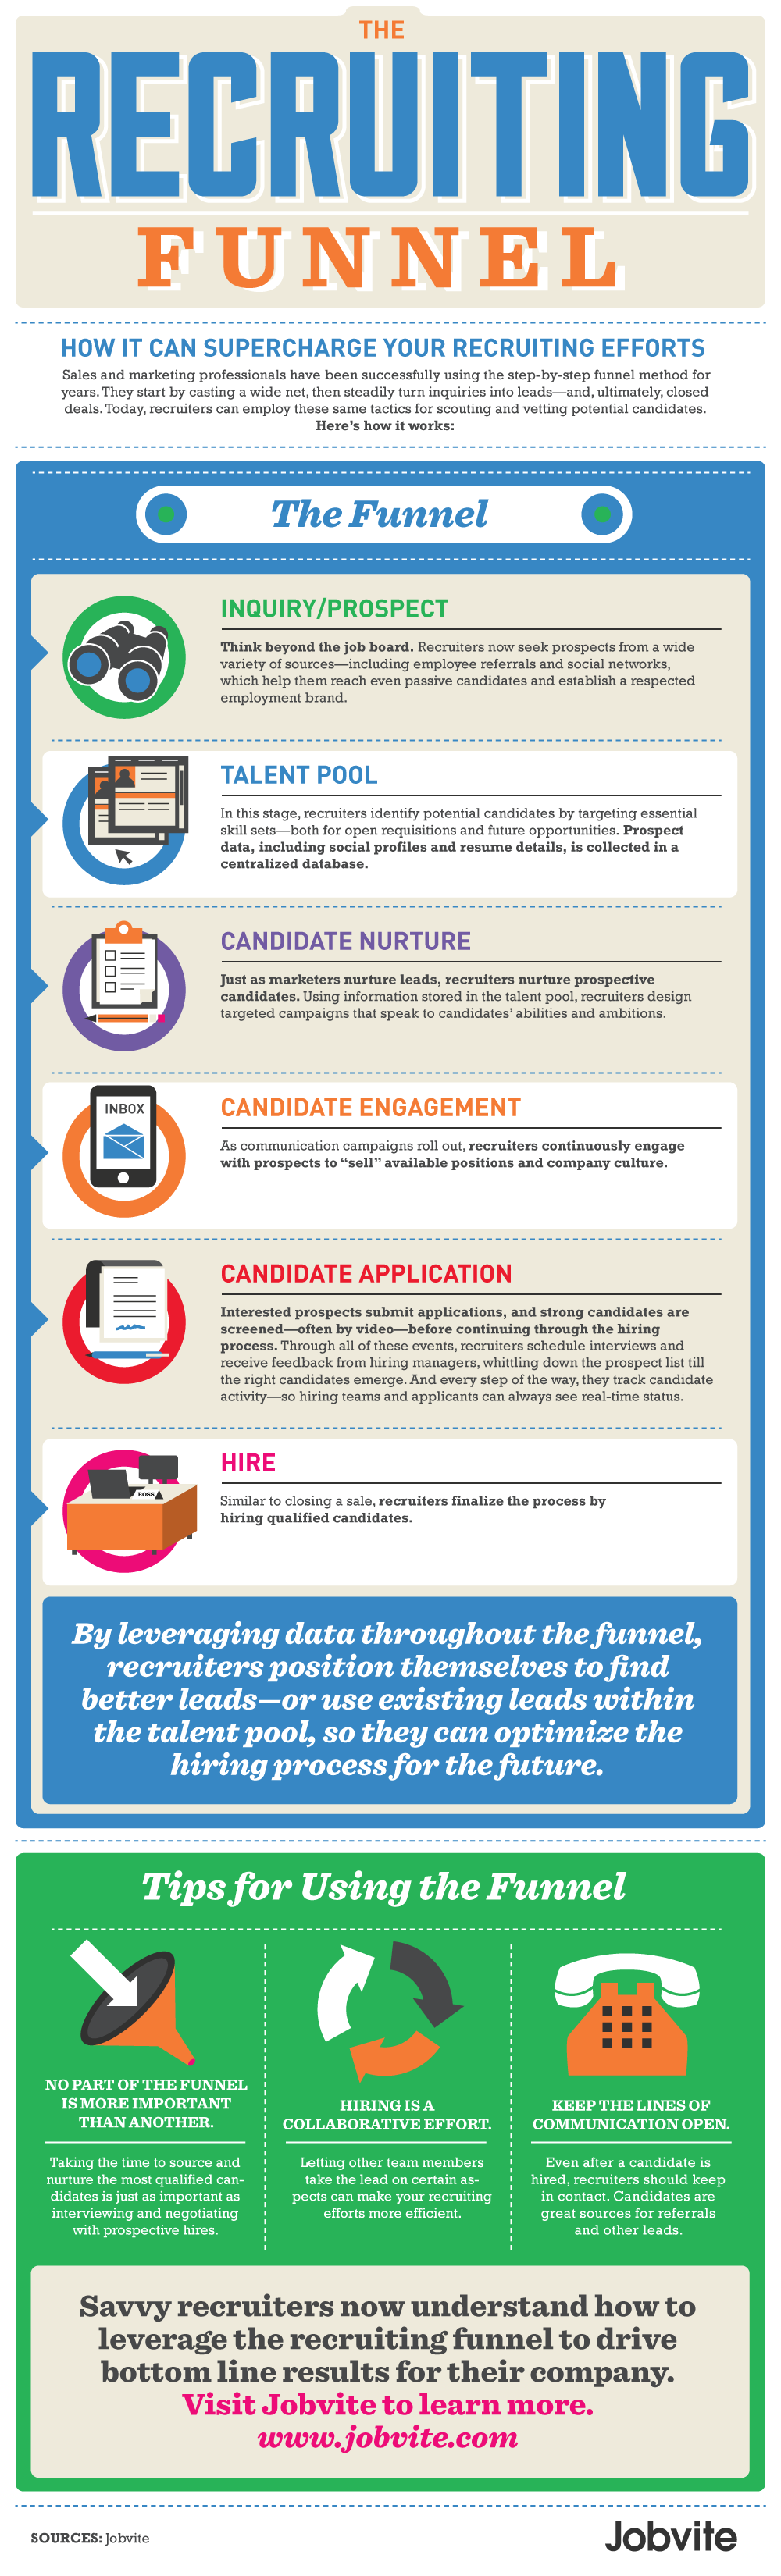 RecruitingFunnel_Infographic2